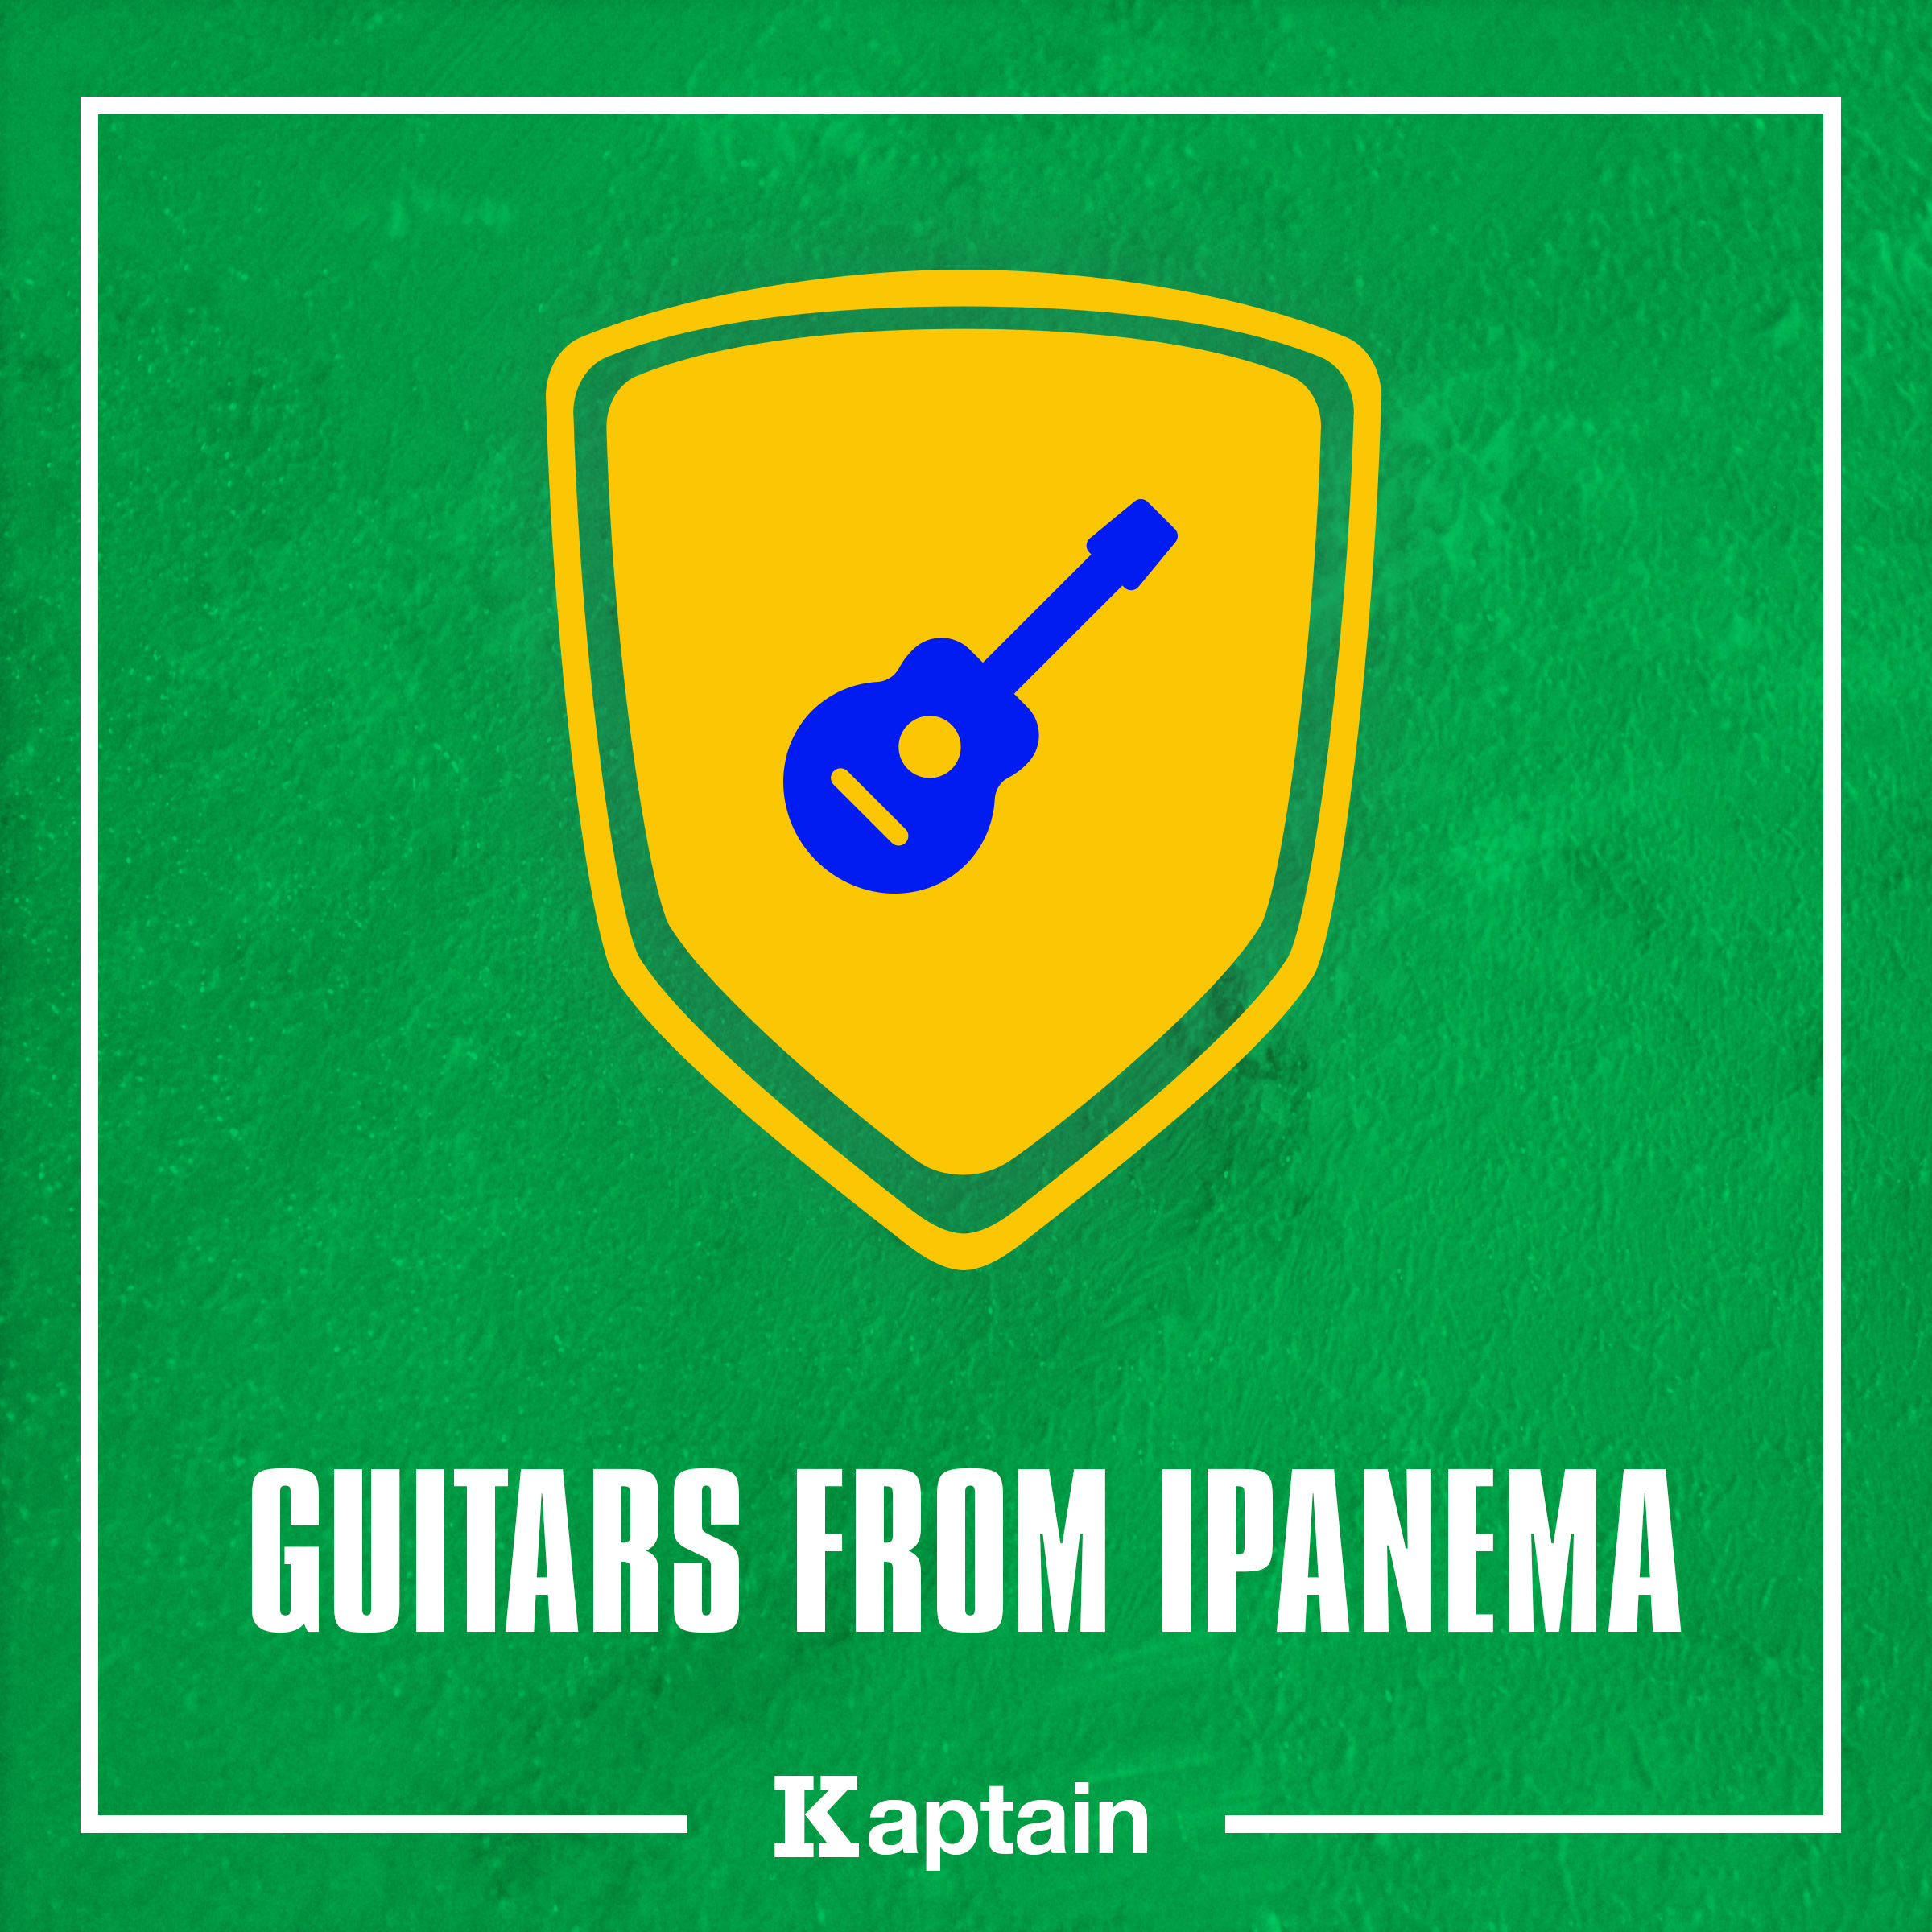 Guitars From Ipanema